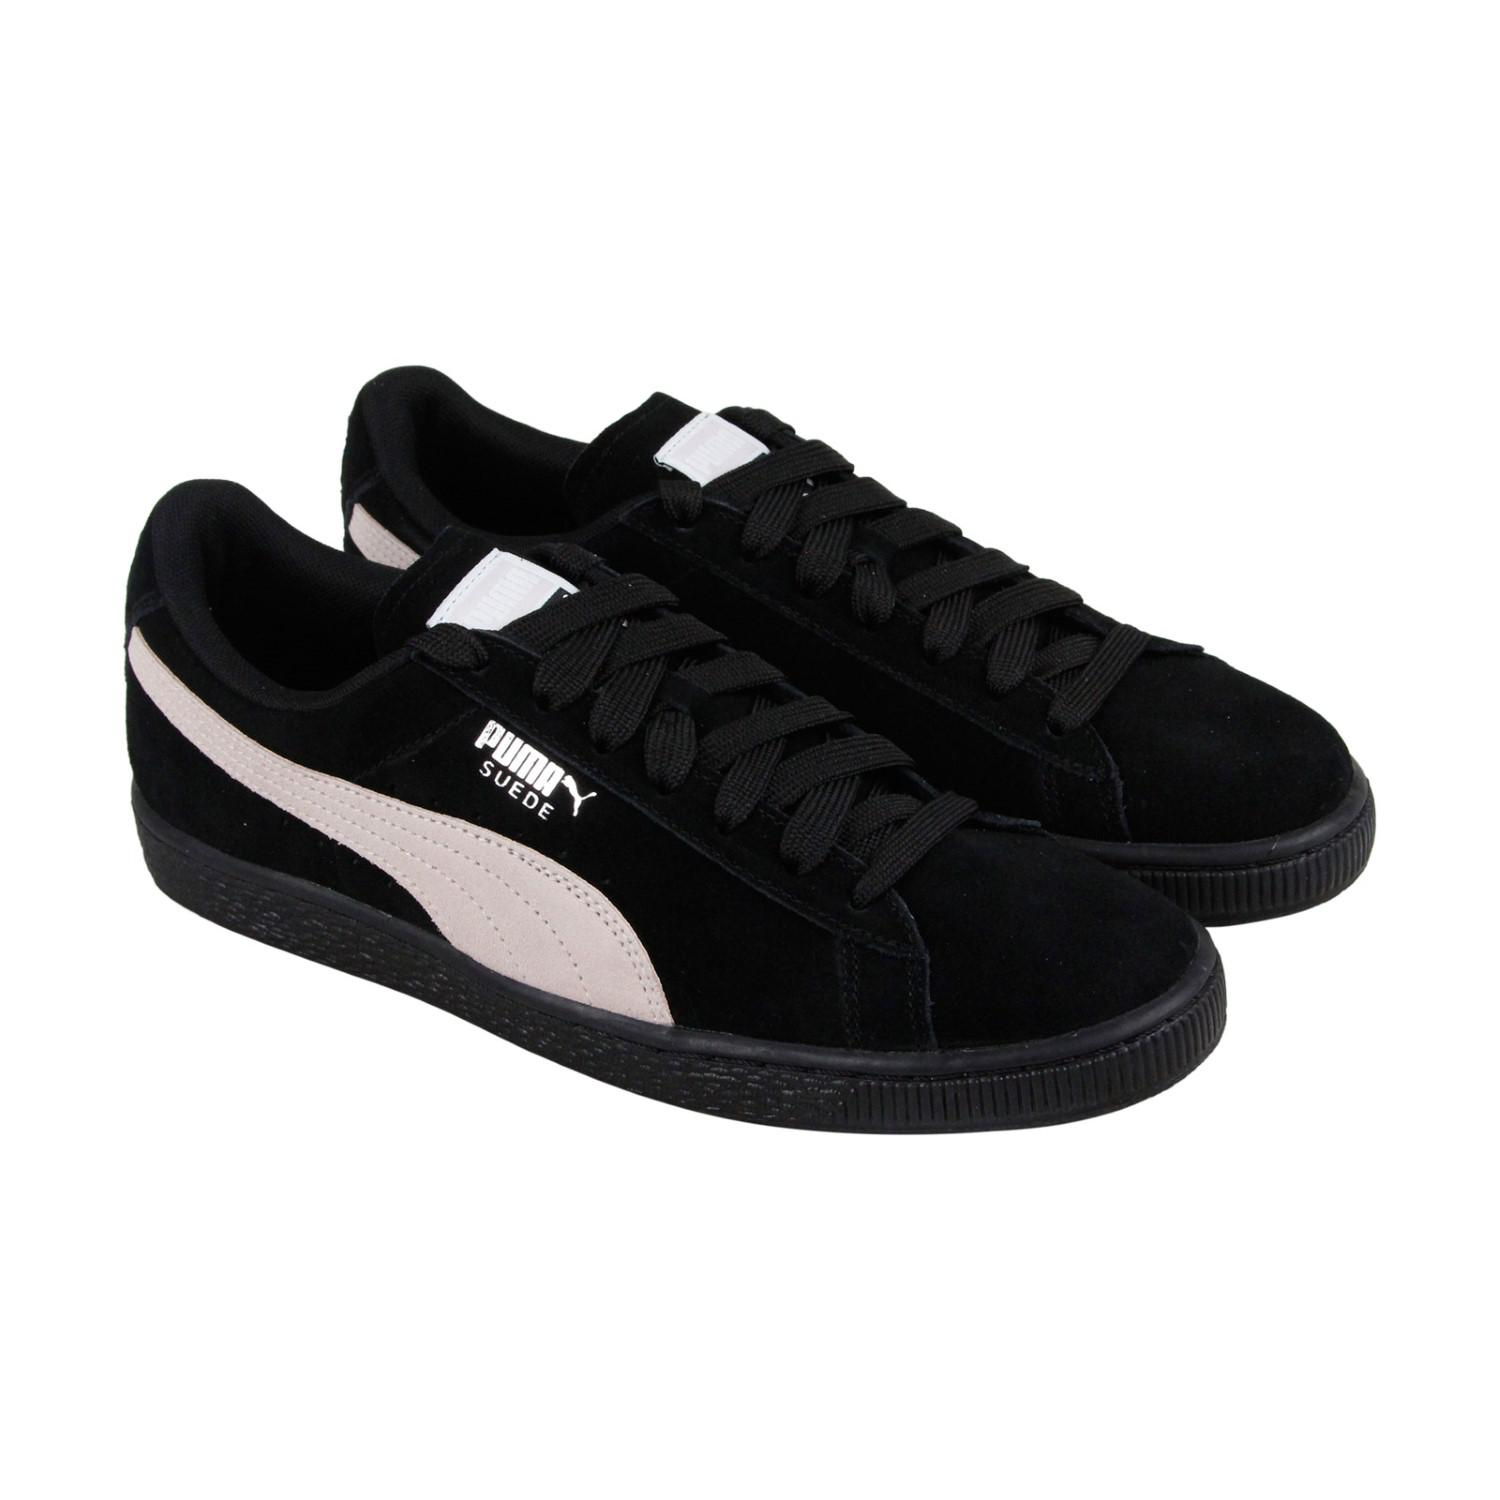 44bd23f83d16b1 Lyst - Puma Suede Classic Pearl Lace Up Sneakers in Black